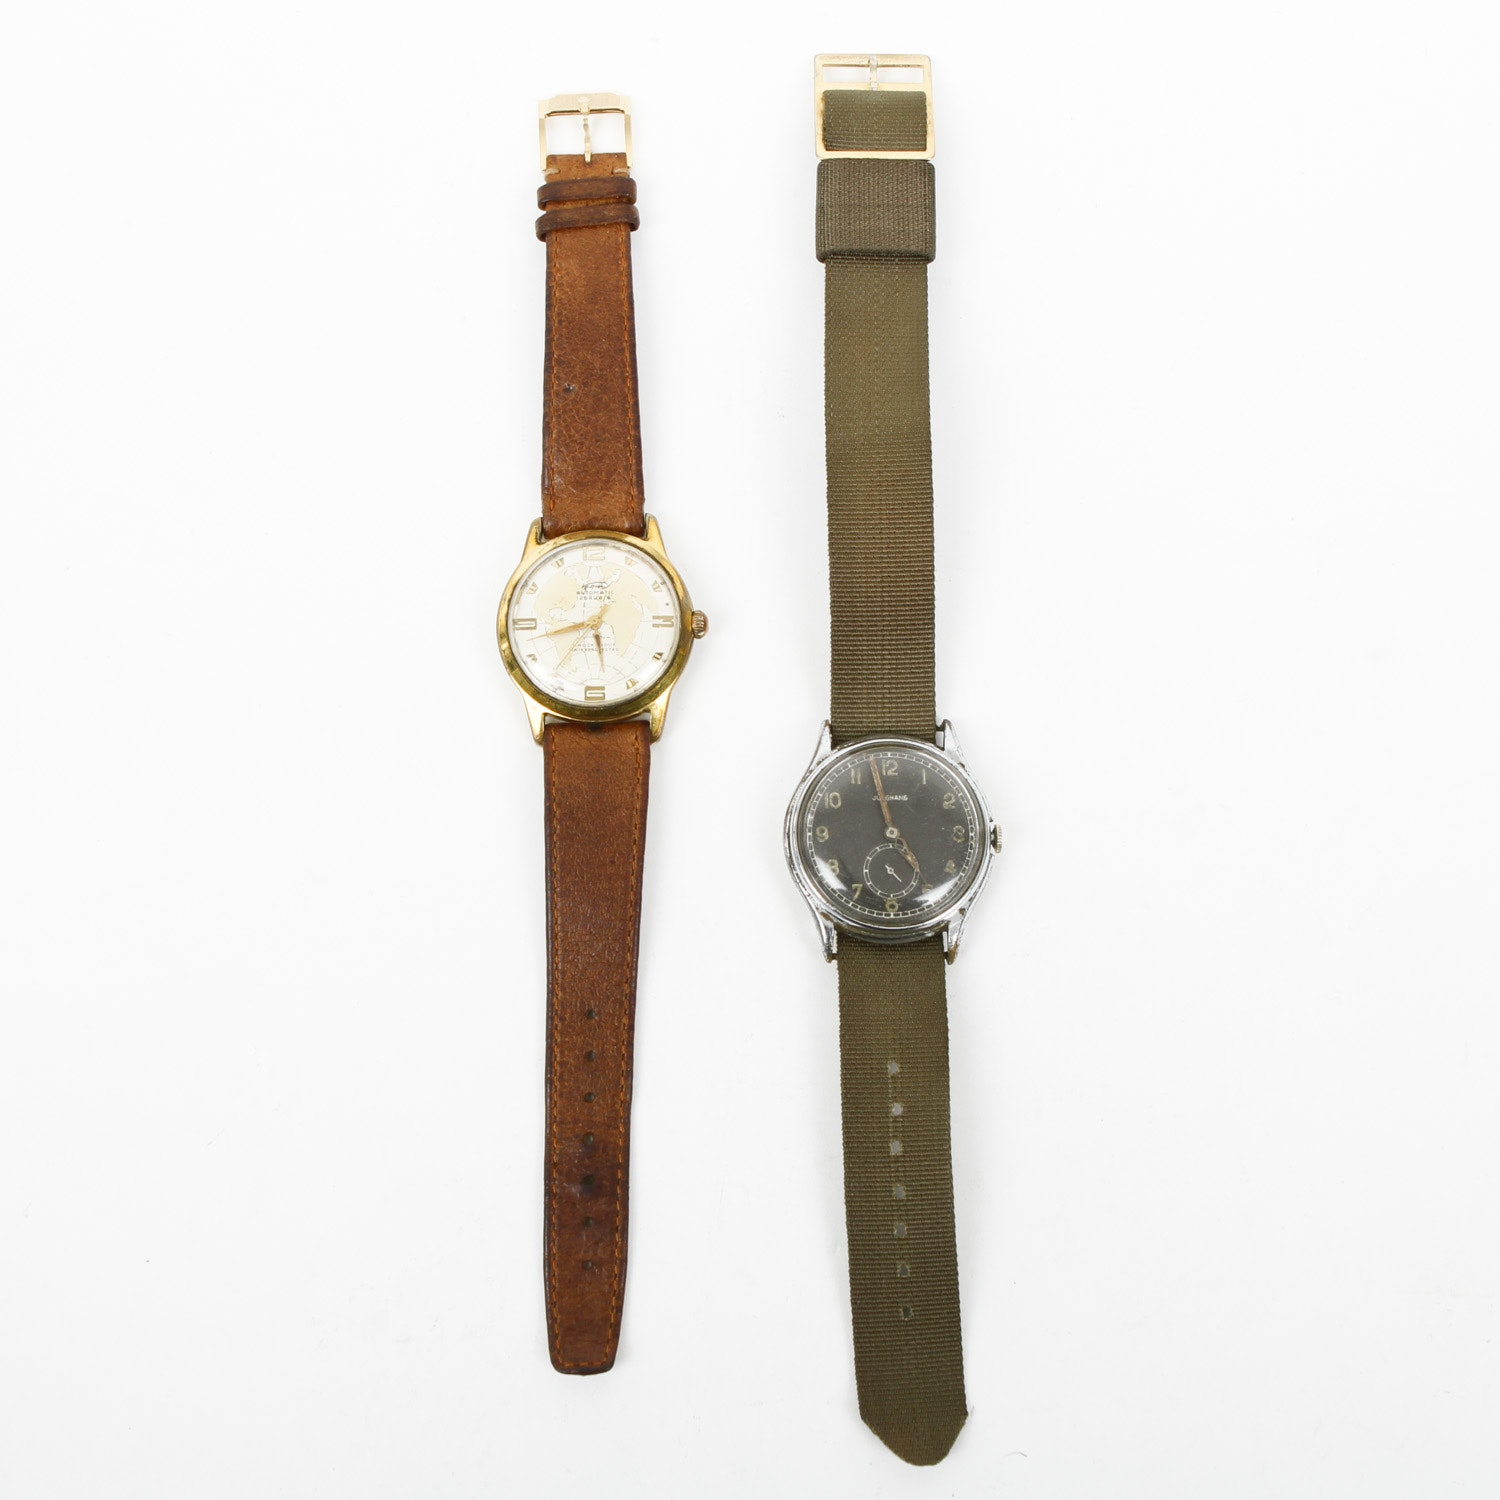 Pair of Vintage Wristwatches